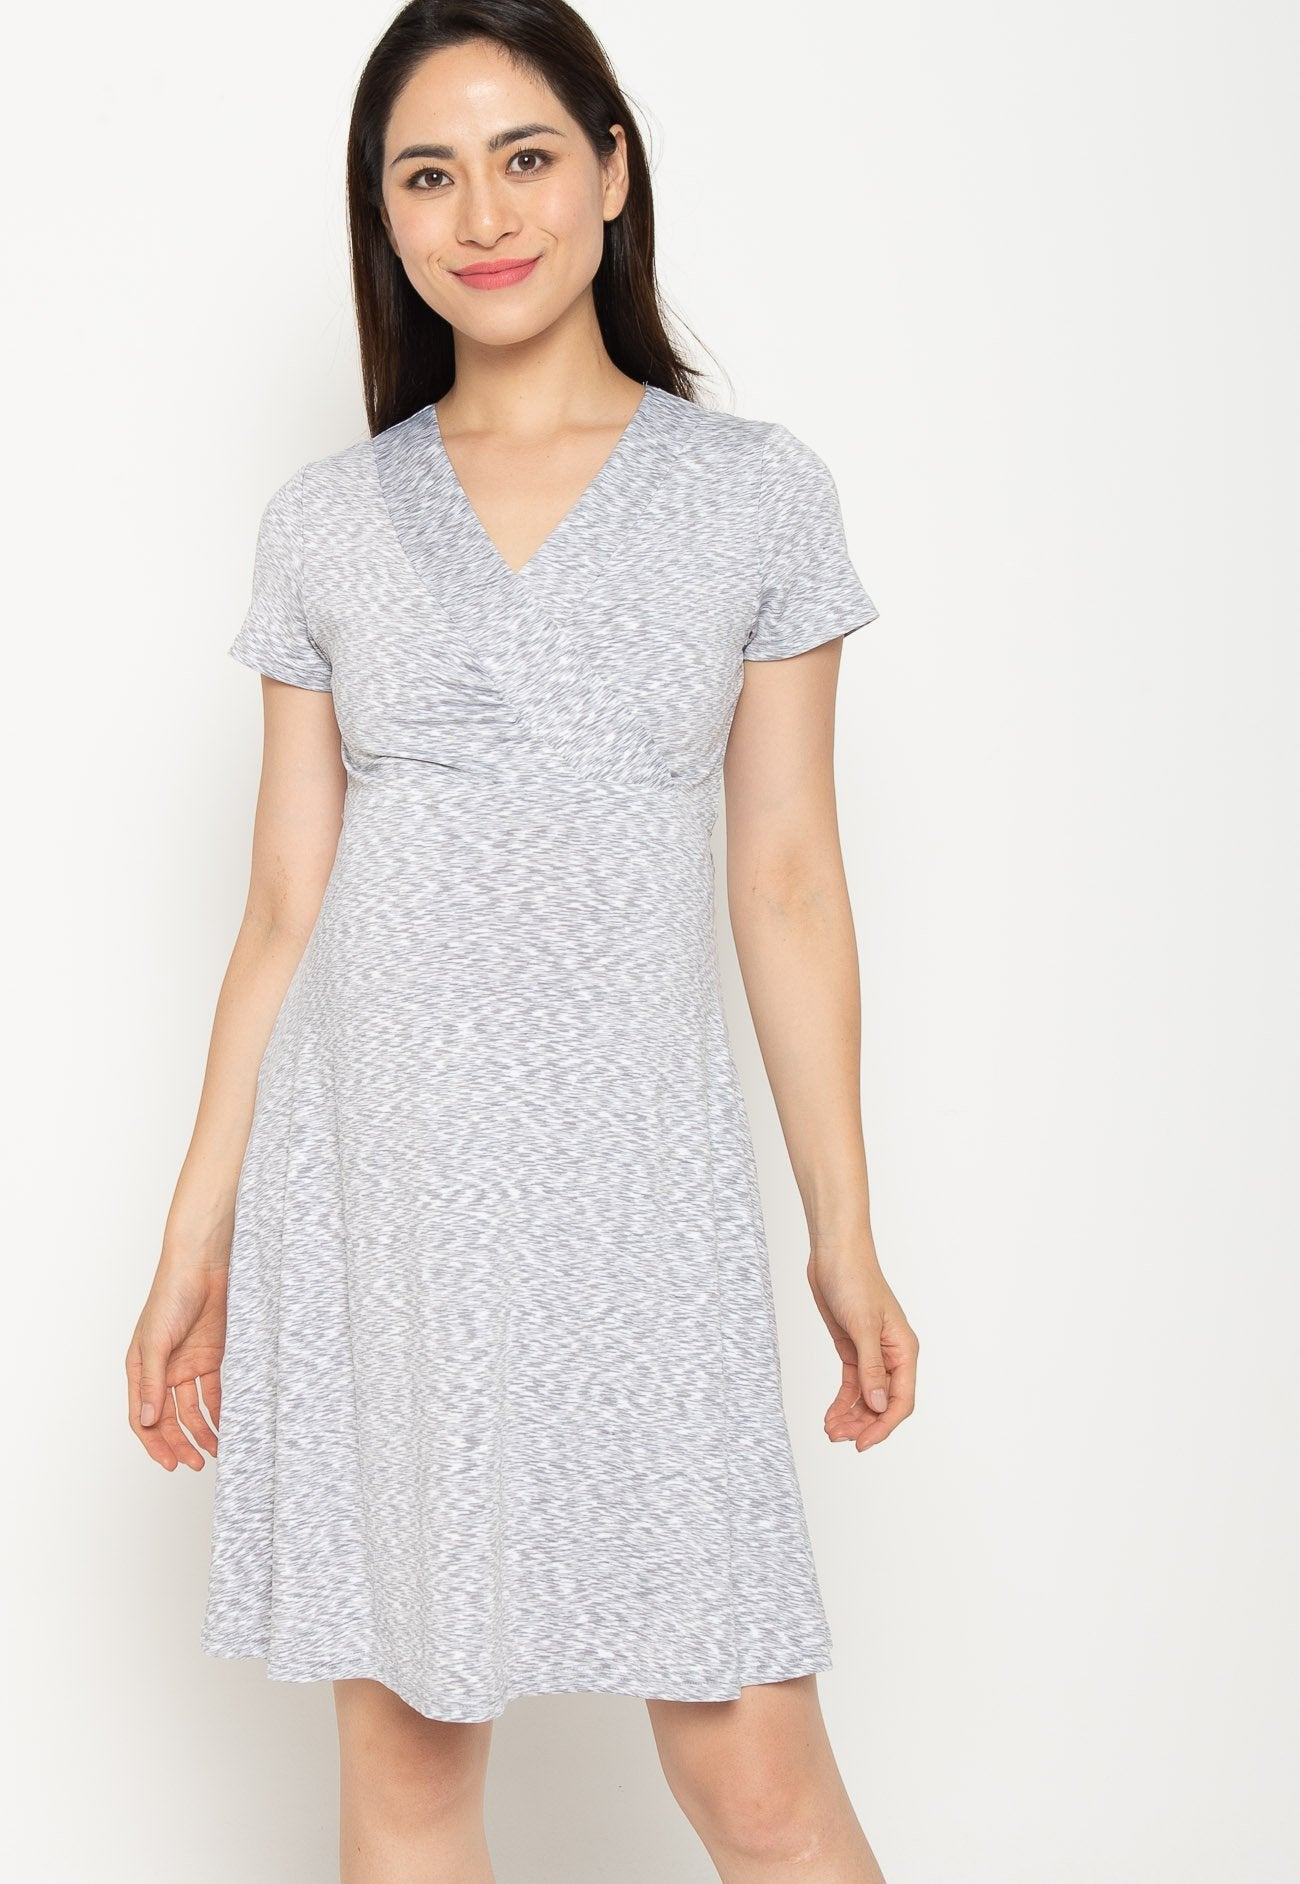 Mothercot Conley Stripes Empire Nursing Dress In Light Grey  by JumpEatCry - Maternity and nursing wear